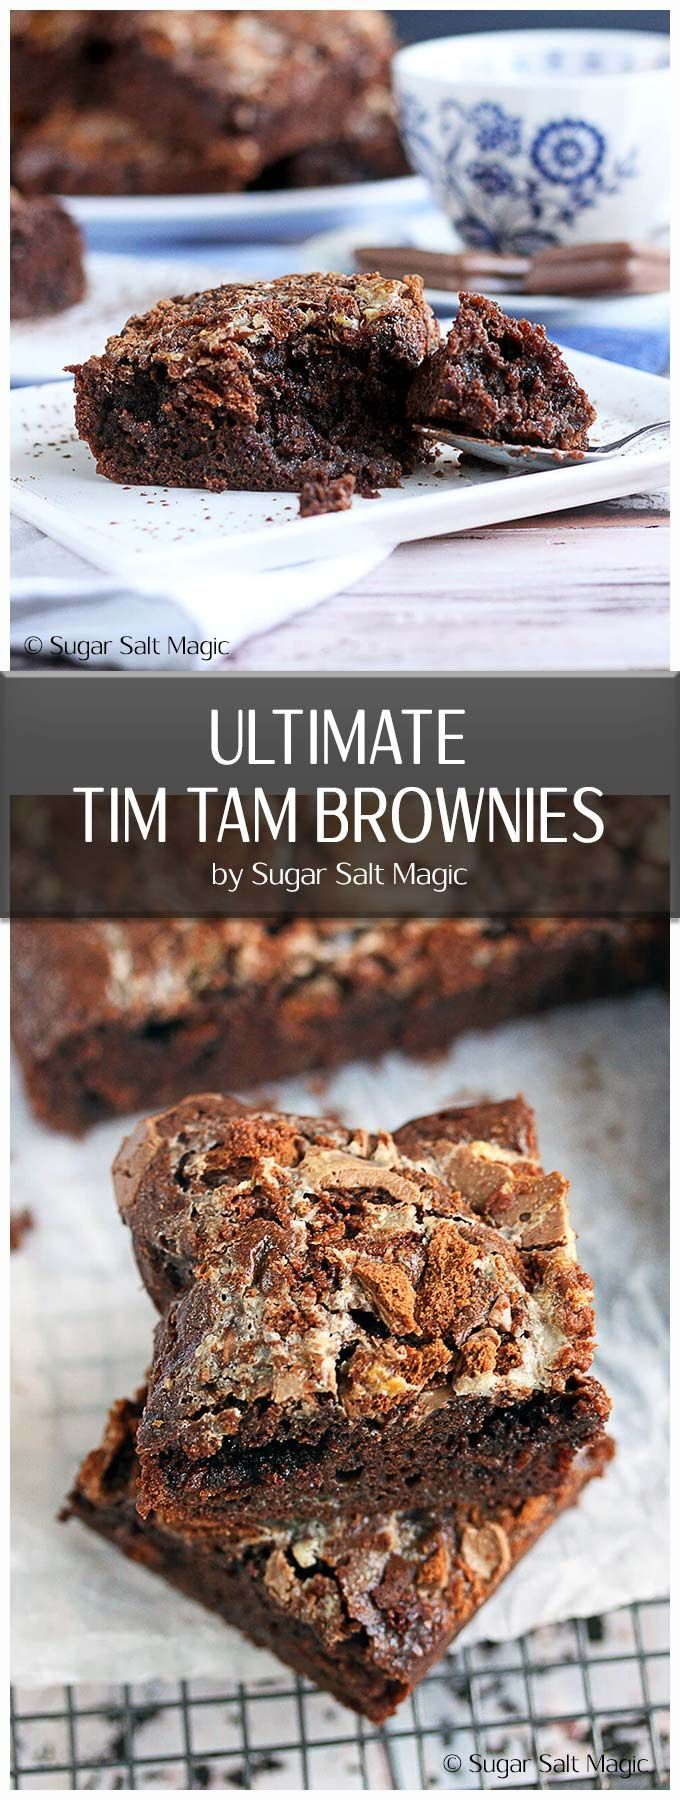 Ultimate Tim Tam Brownies are perfect dense, fudgy brownies filled and topped with Arnotts Tim Tams #australiadayfood #brownies via @sugarsaltmagic